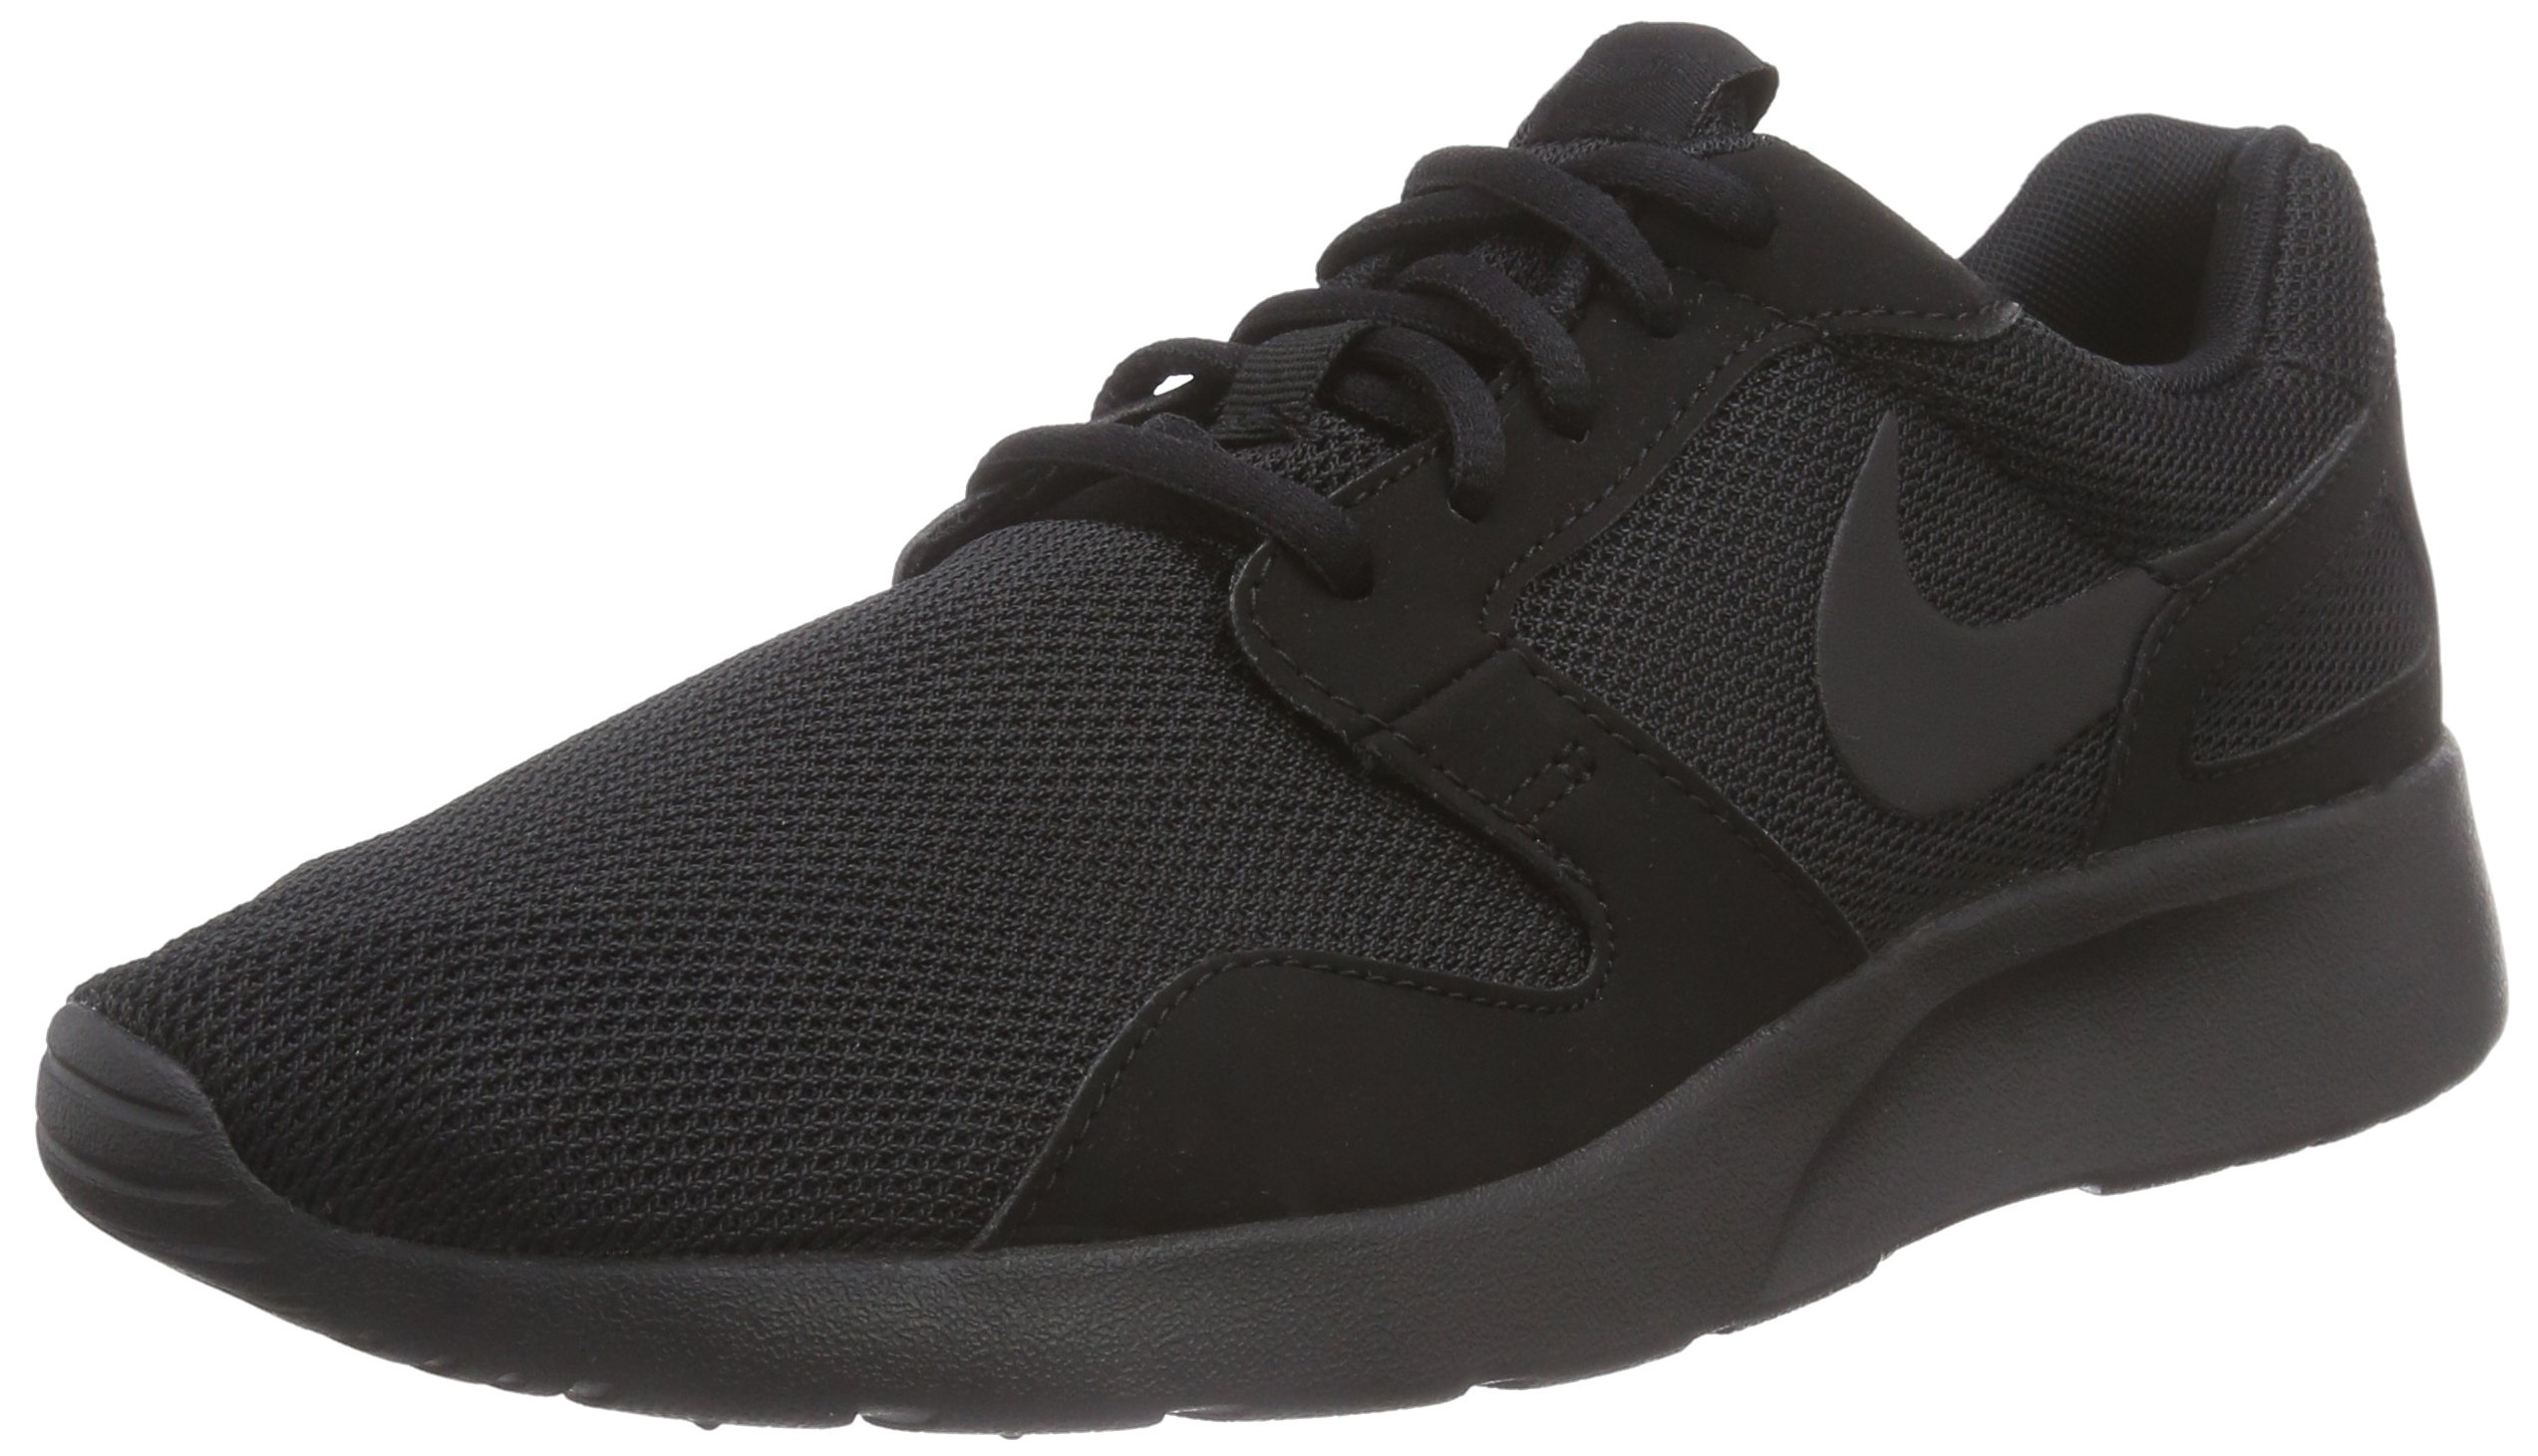 best service 725bb 69a11 Galleon - Nike Mens Kaishi Running Shoes Black Black 654473-003 Size 10